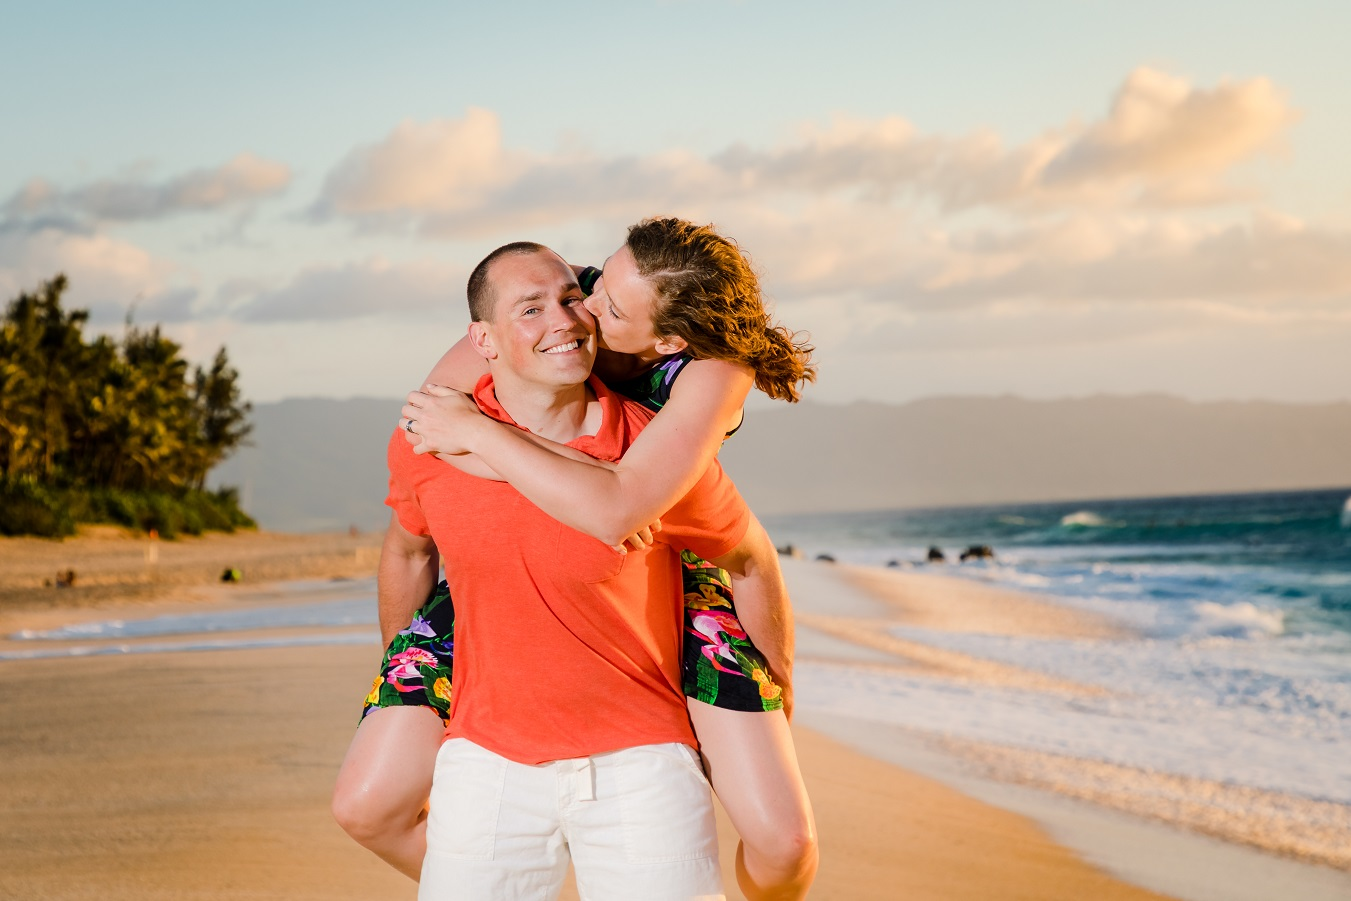 north shore oahu hawaii beach sunset surprise proposal